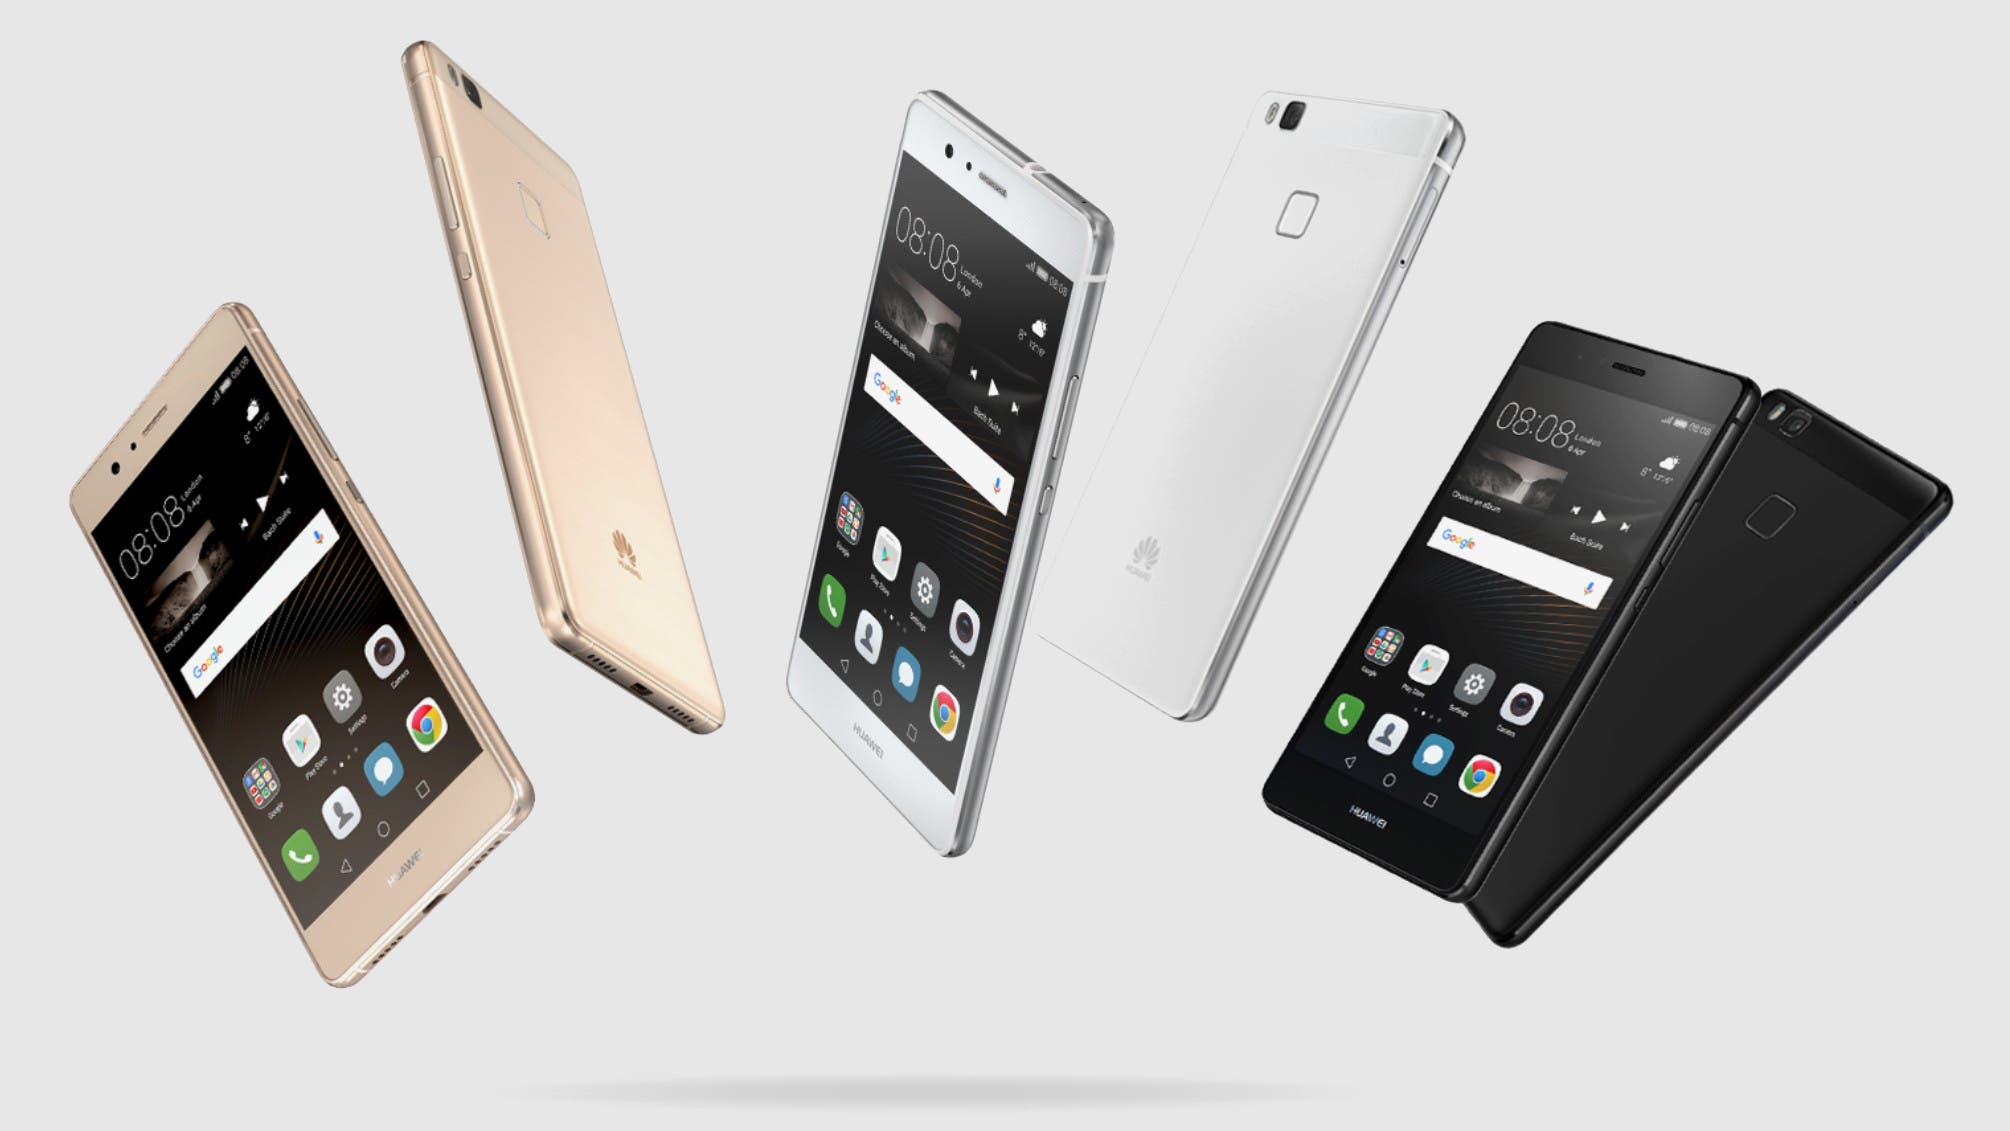 Huawei P9 Lite colores